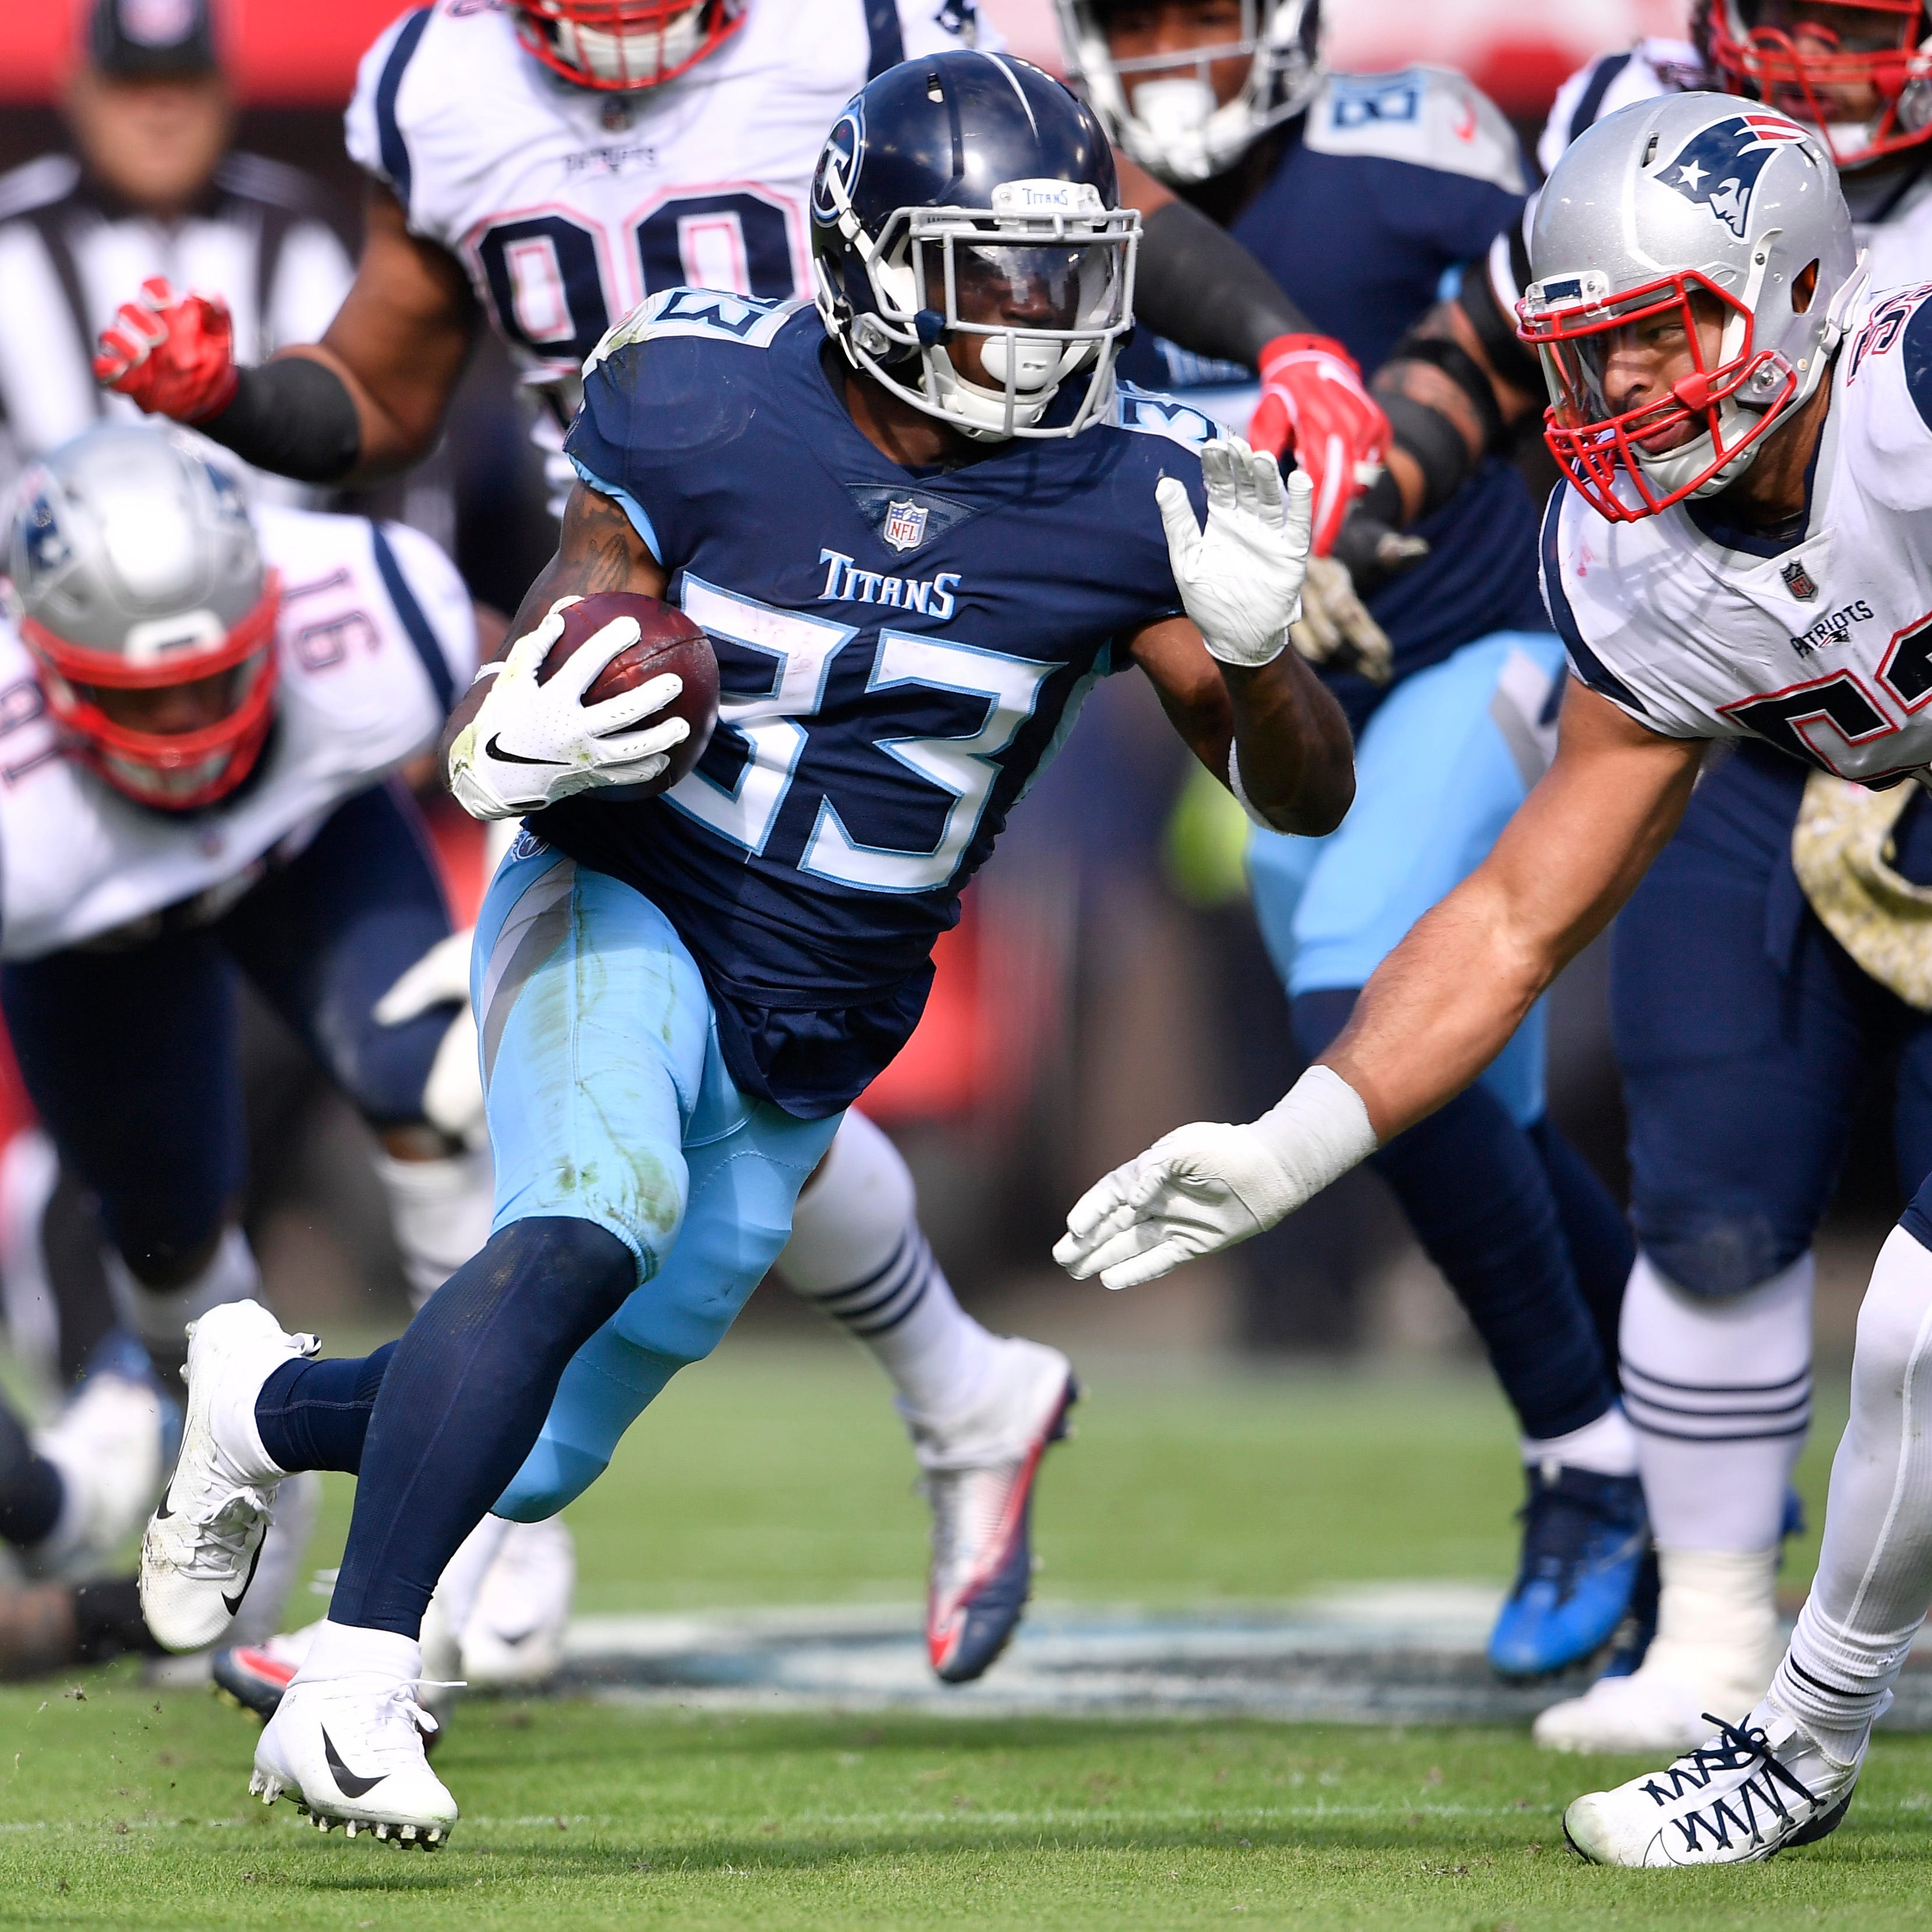 Titans-Patriots: Bill Belichick responds to Titans RB Dion Lewis' comments